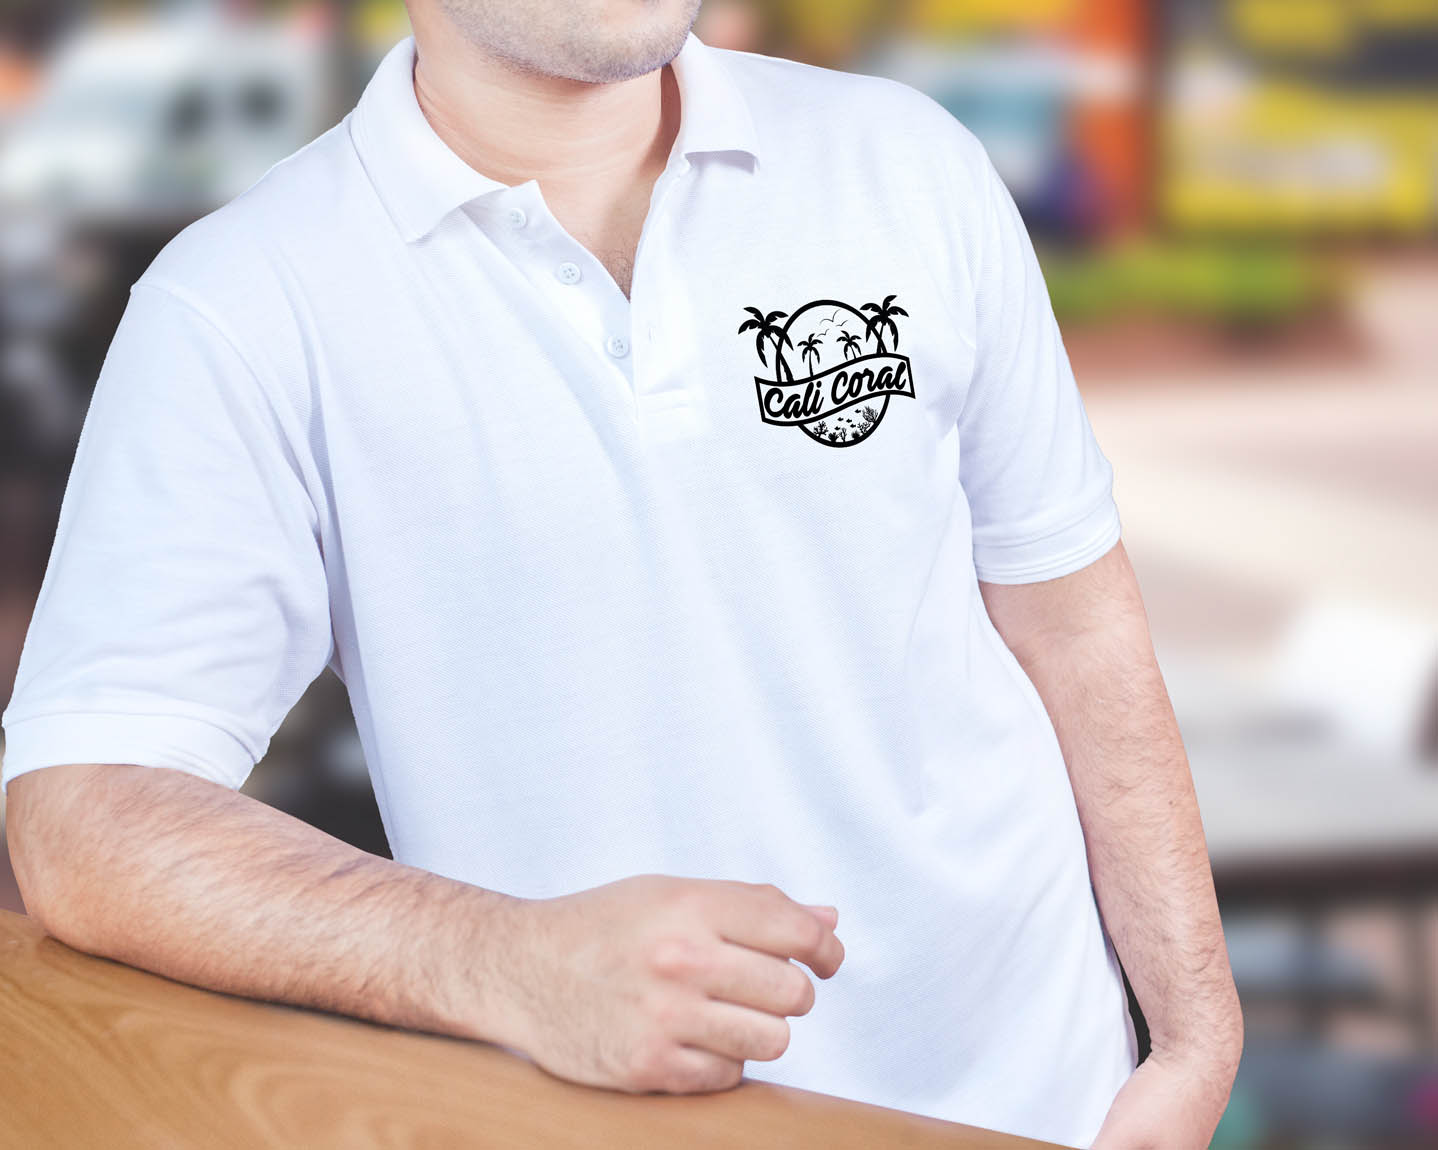 CaliCoral Polo Shirt